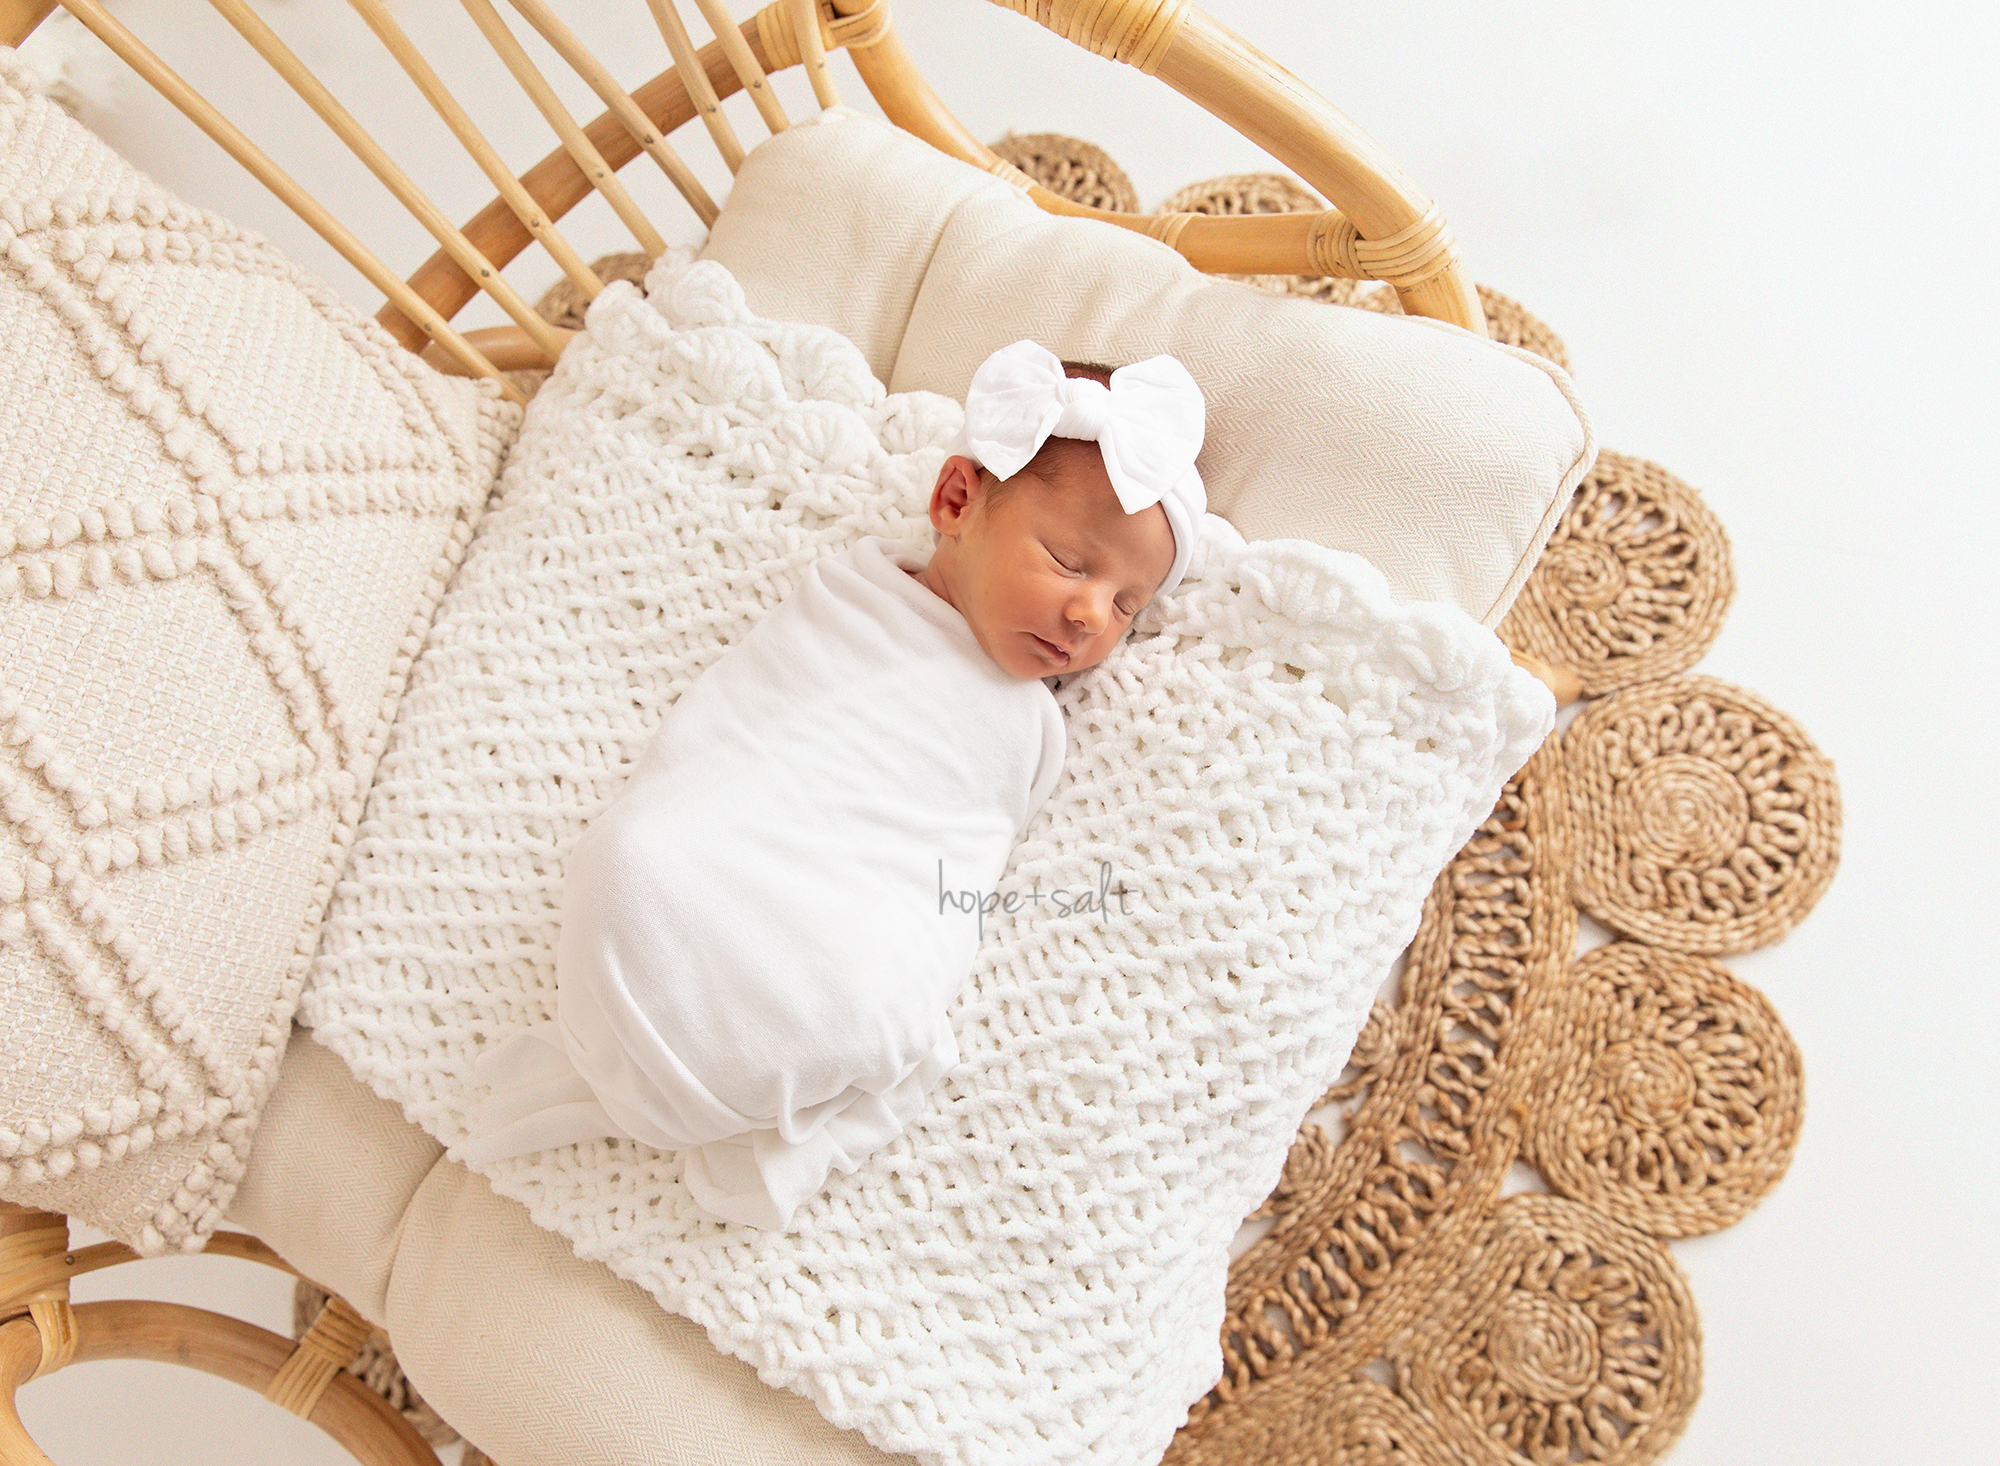 stoney creek ontario studio newborn session for baby girl T 2021 in bright airy and boho style hamilton baby photographer hope and salt